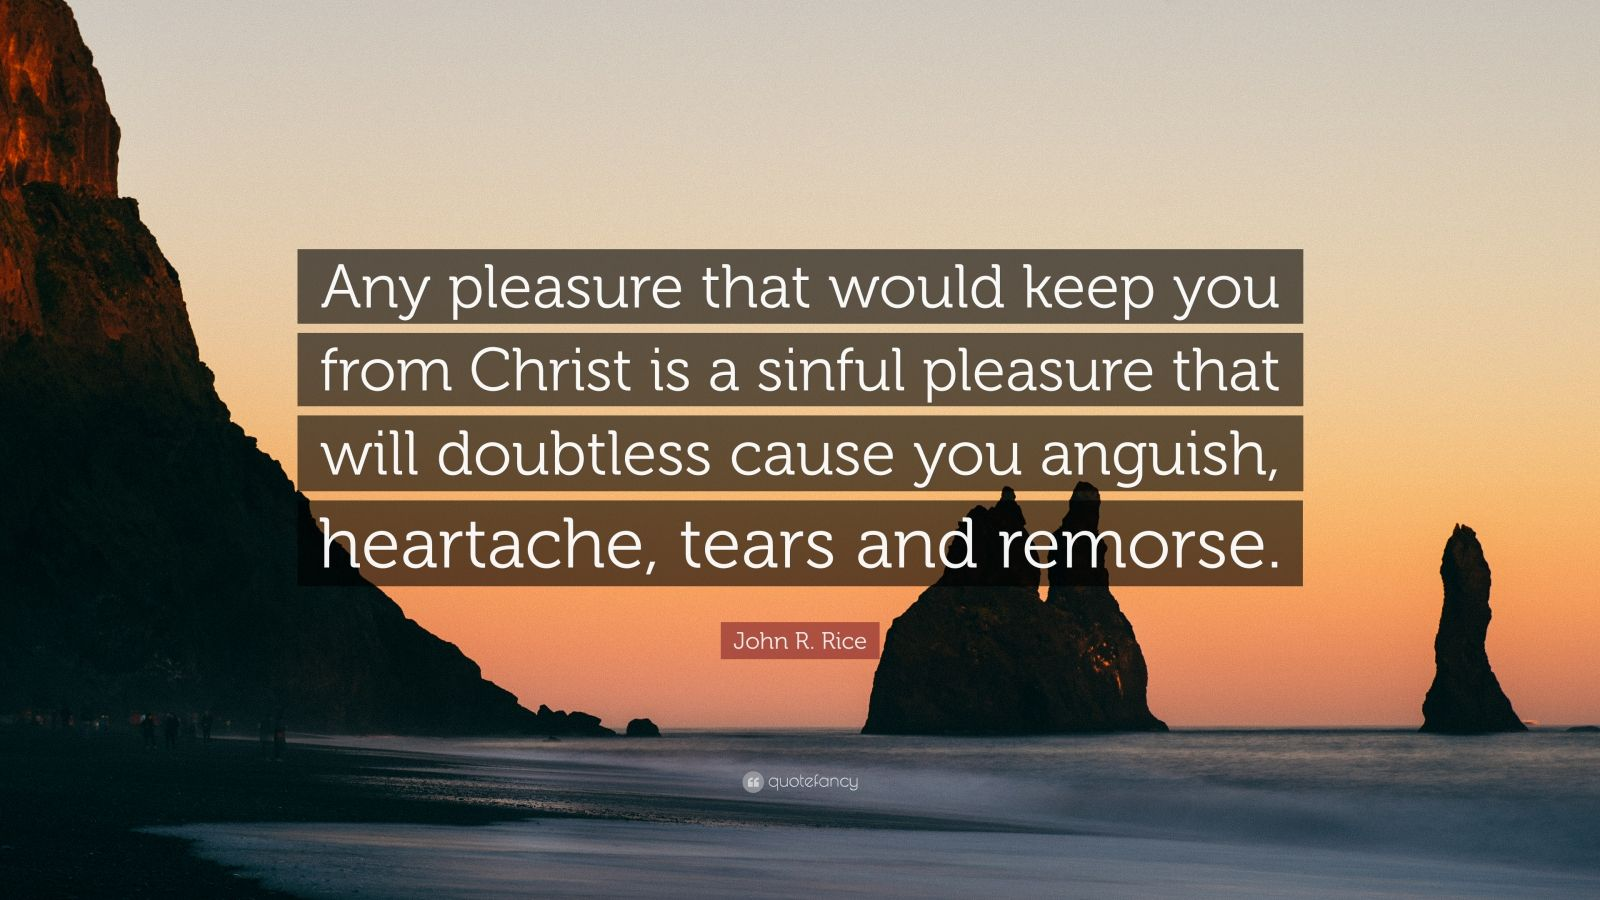 """John R. Rice Quote: """"Any pleasure that would keep you from Christ is a sinful pleasure that will doubtless cause you anguish, heartache, tears and remorse."""""""